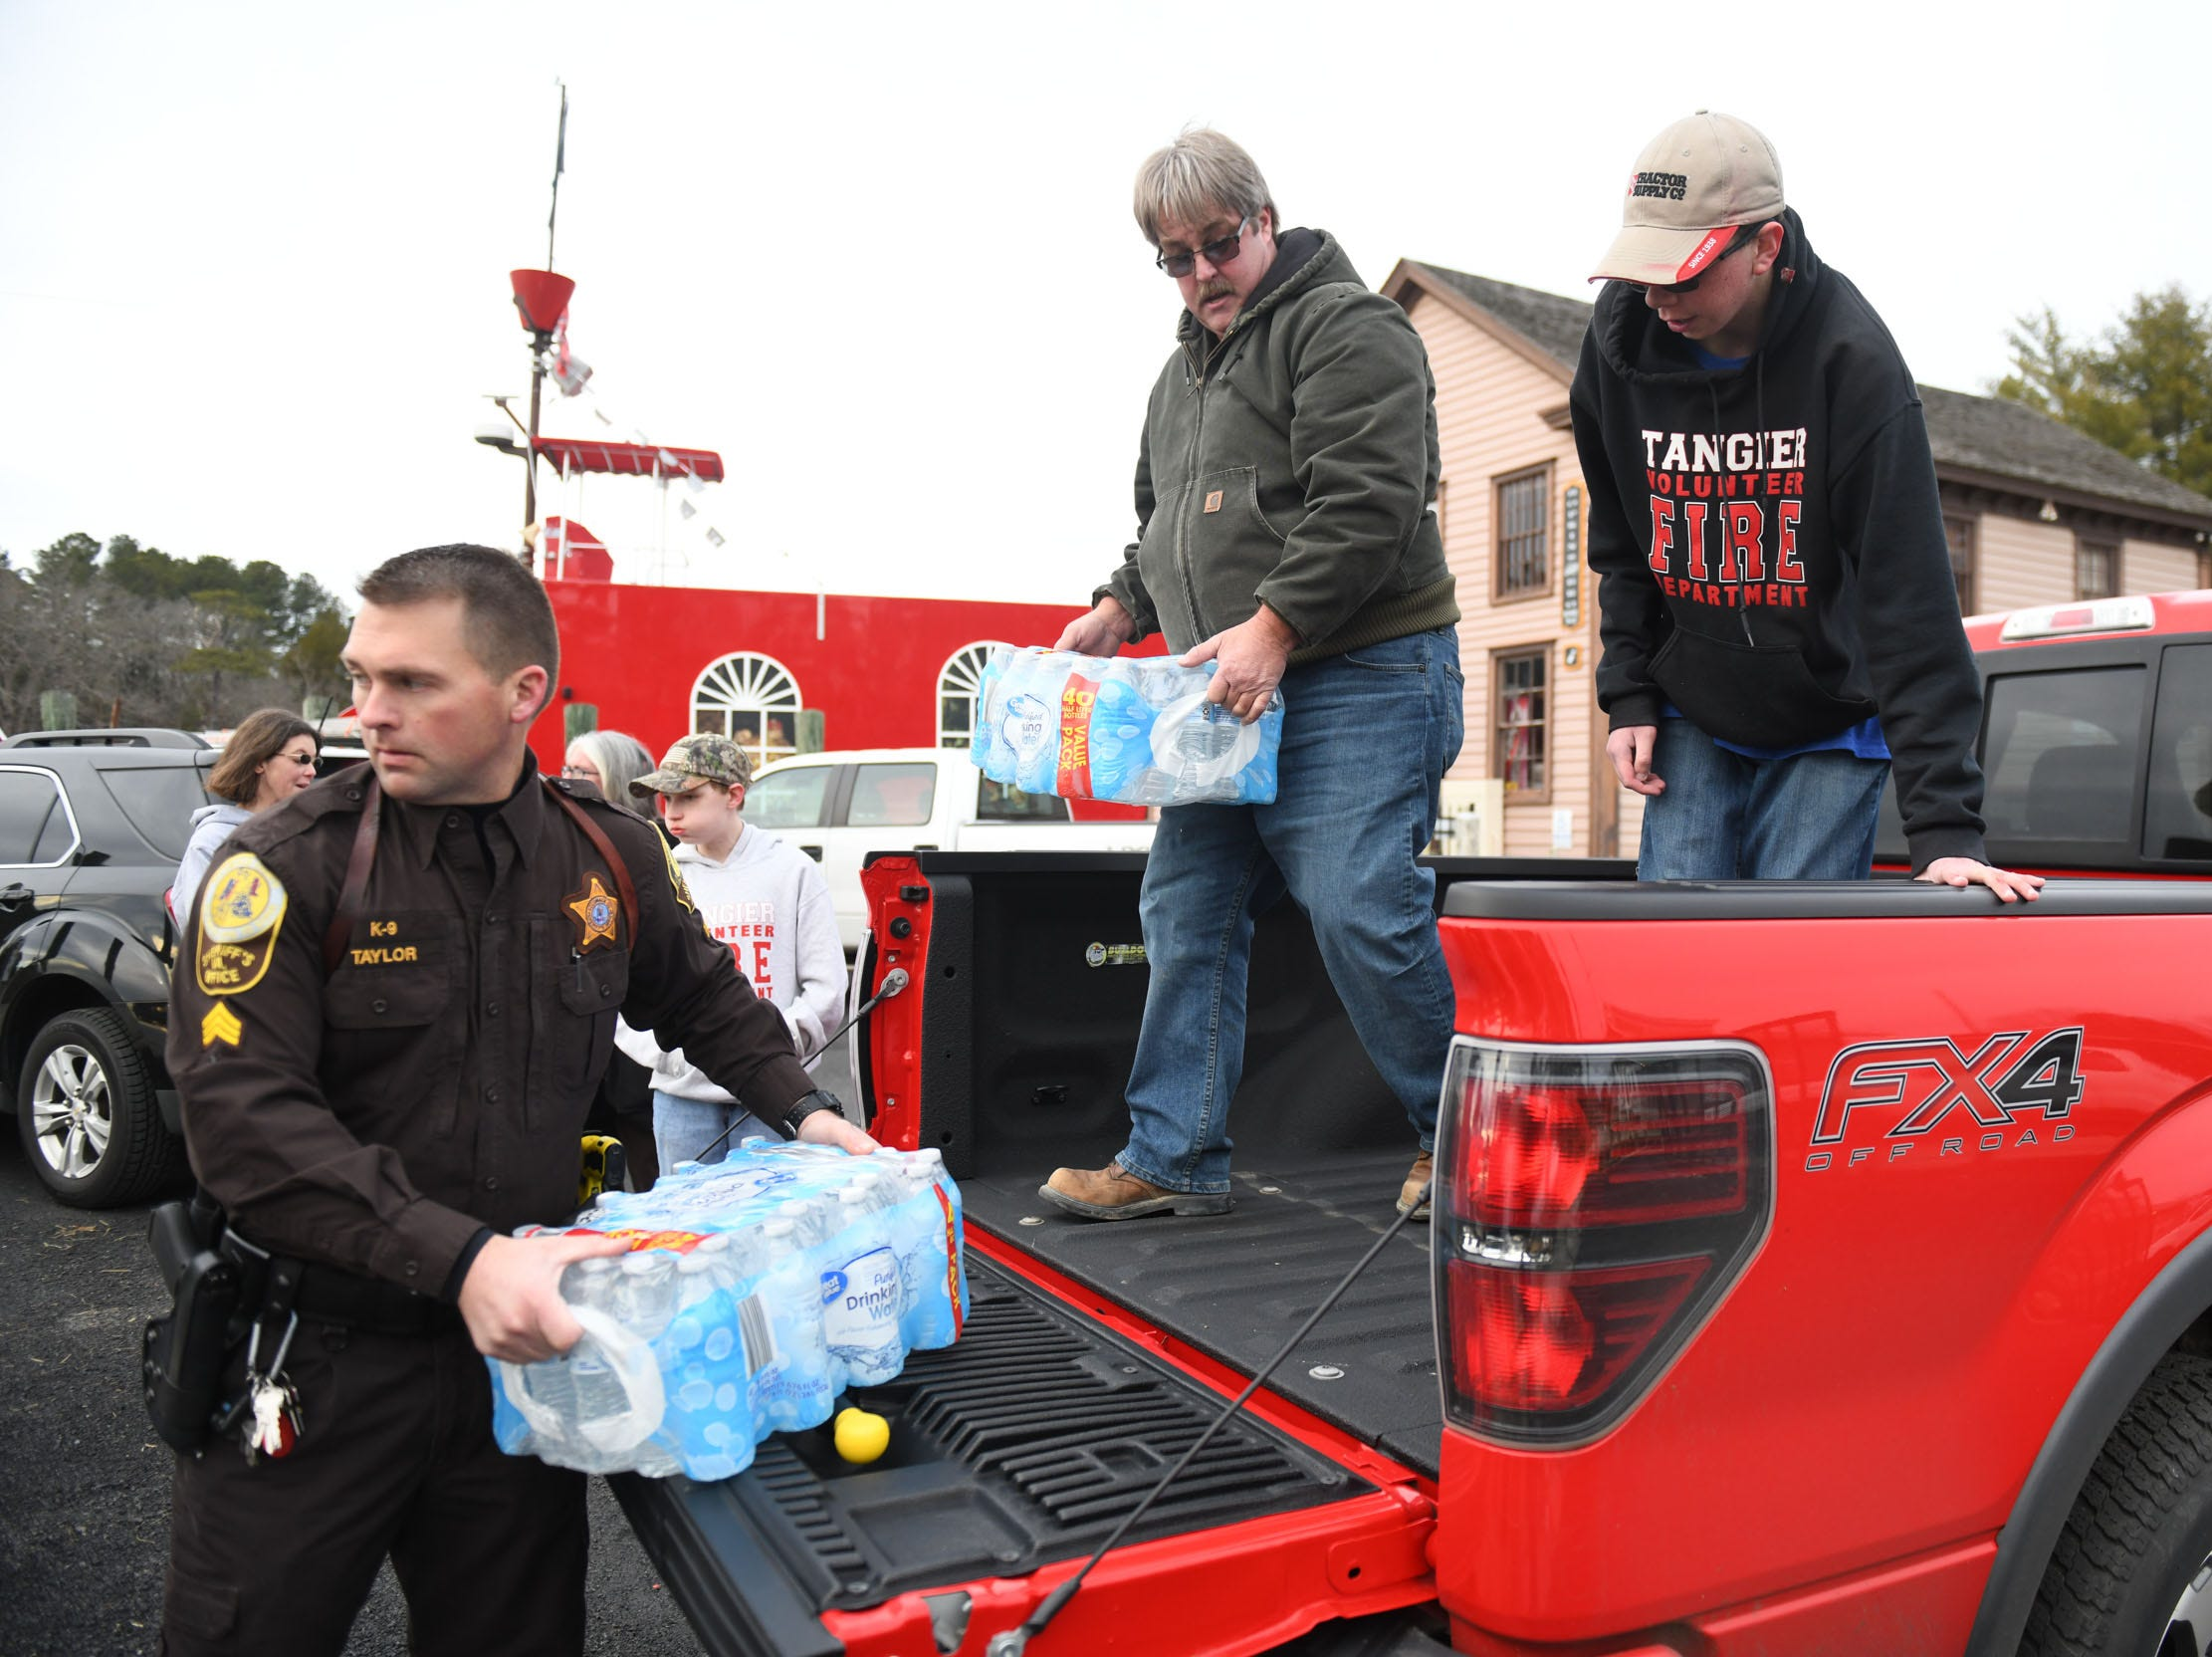 Members of the community gathered at the Onancock Wharf help load donated water and hay to take to Tangier Island on the Joyce Marie II on Monday,  Jan. 28, 2019.